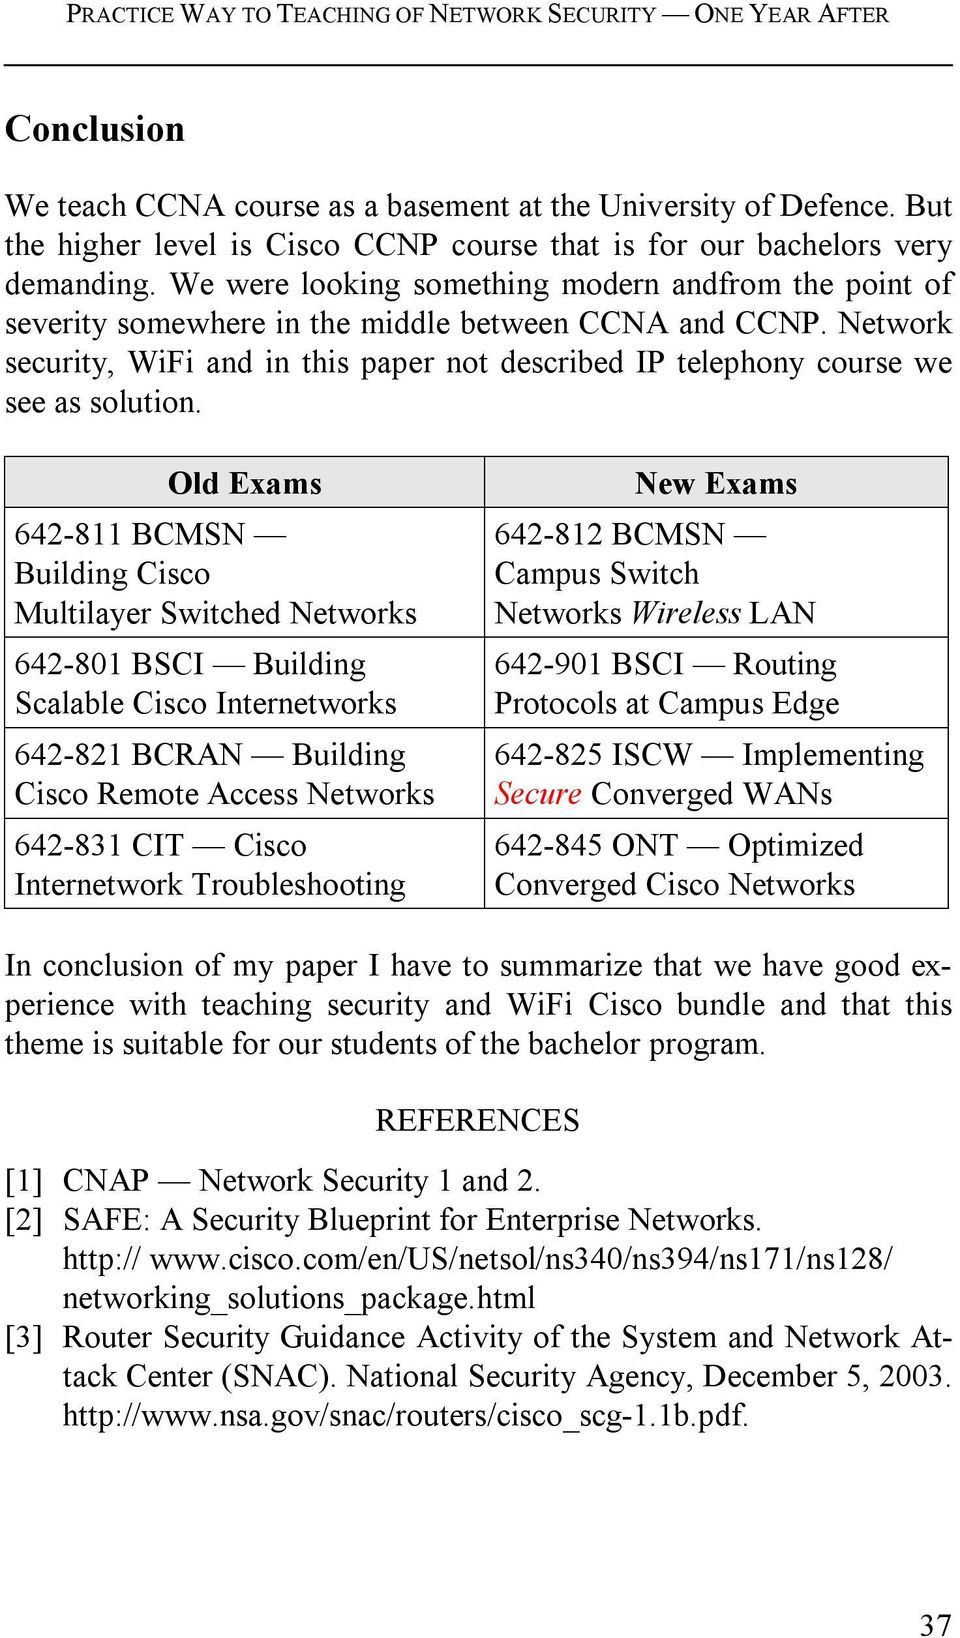 PRACTICE WAY TO TEACHING OF NETWORK SECURITY ONE YEAR AFTER